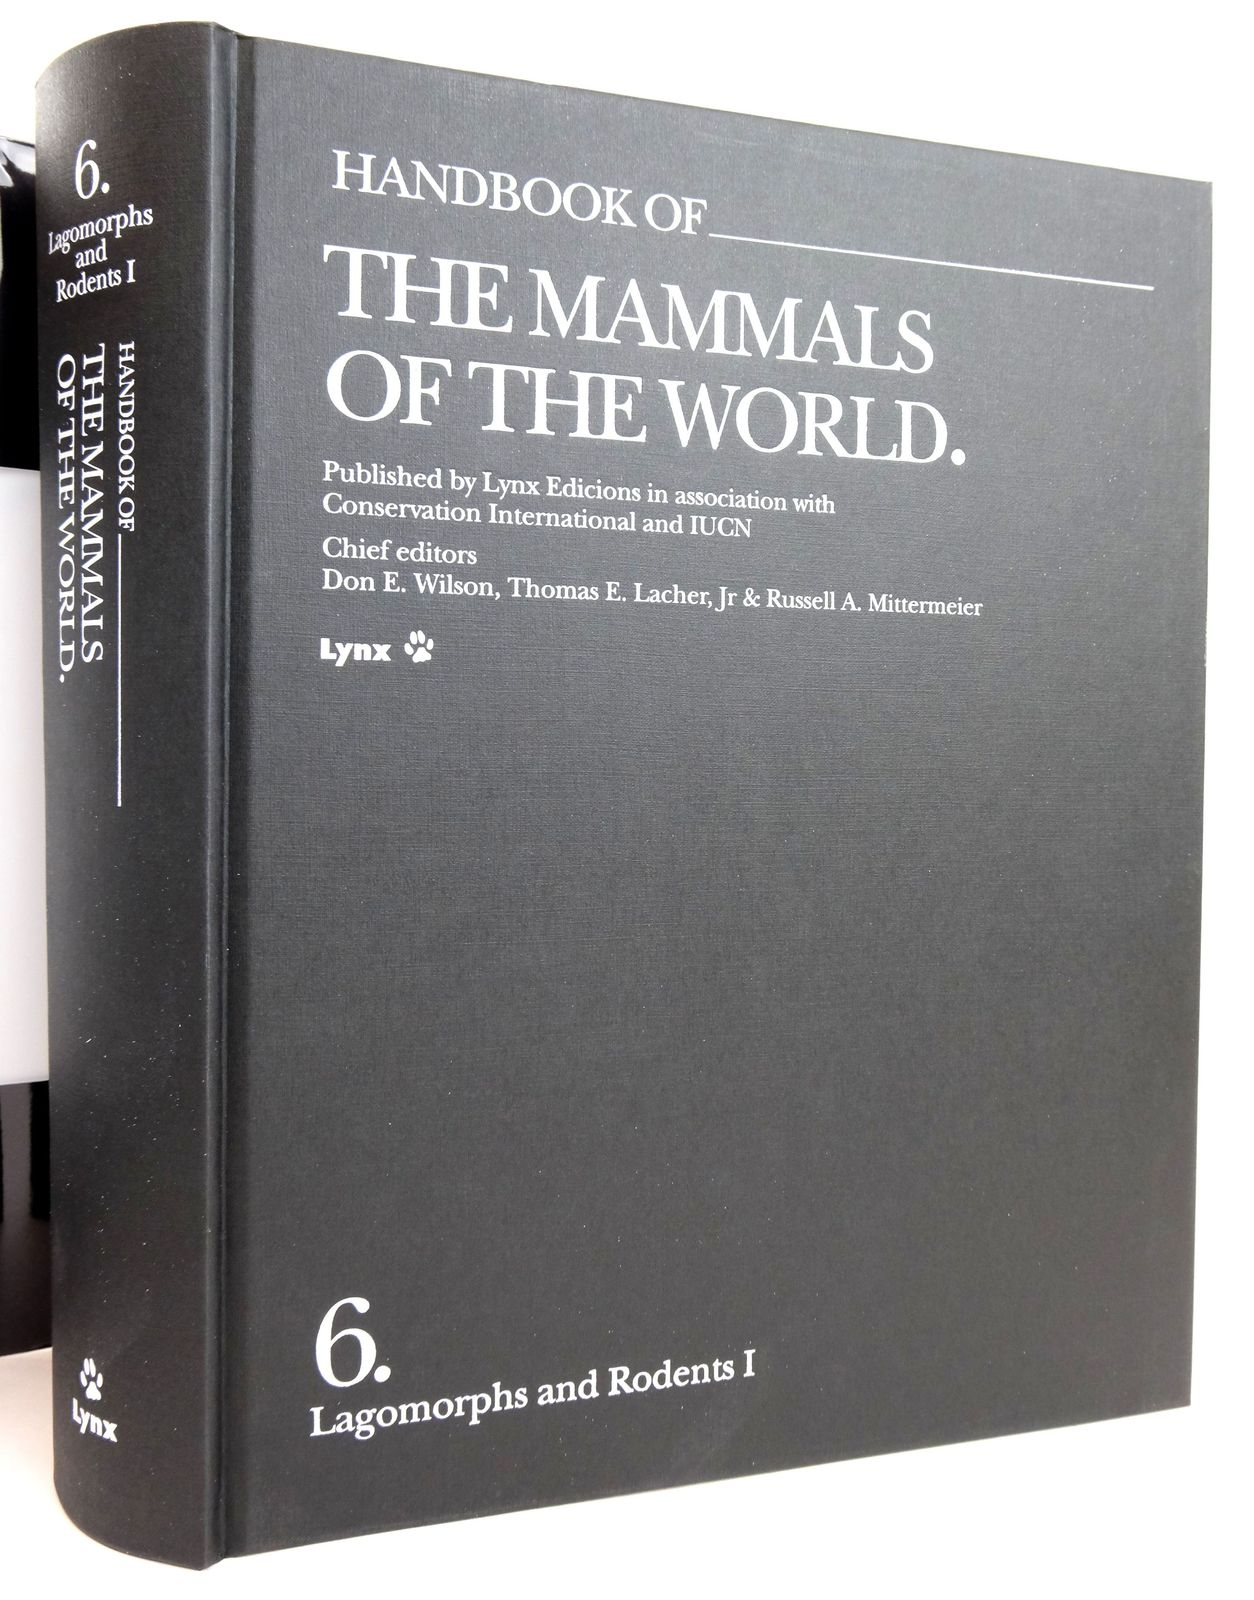 Photo of HANDBOOK OF THE MAMMALS OF THE WORLD 6. LAGOMORPHS AND RODENTS I written by Wilson, Don E. Lacher, Thomas E. Mittermeier, Russell A. et al, published by Lynx Edicions (STOCK CODE: 1820162)  for sale by Stella & Rose's Books